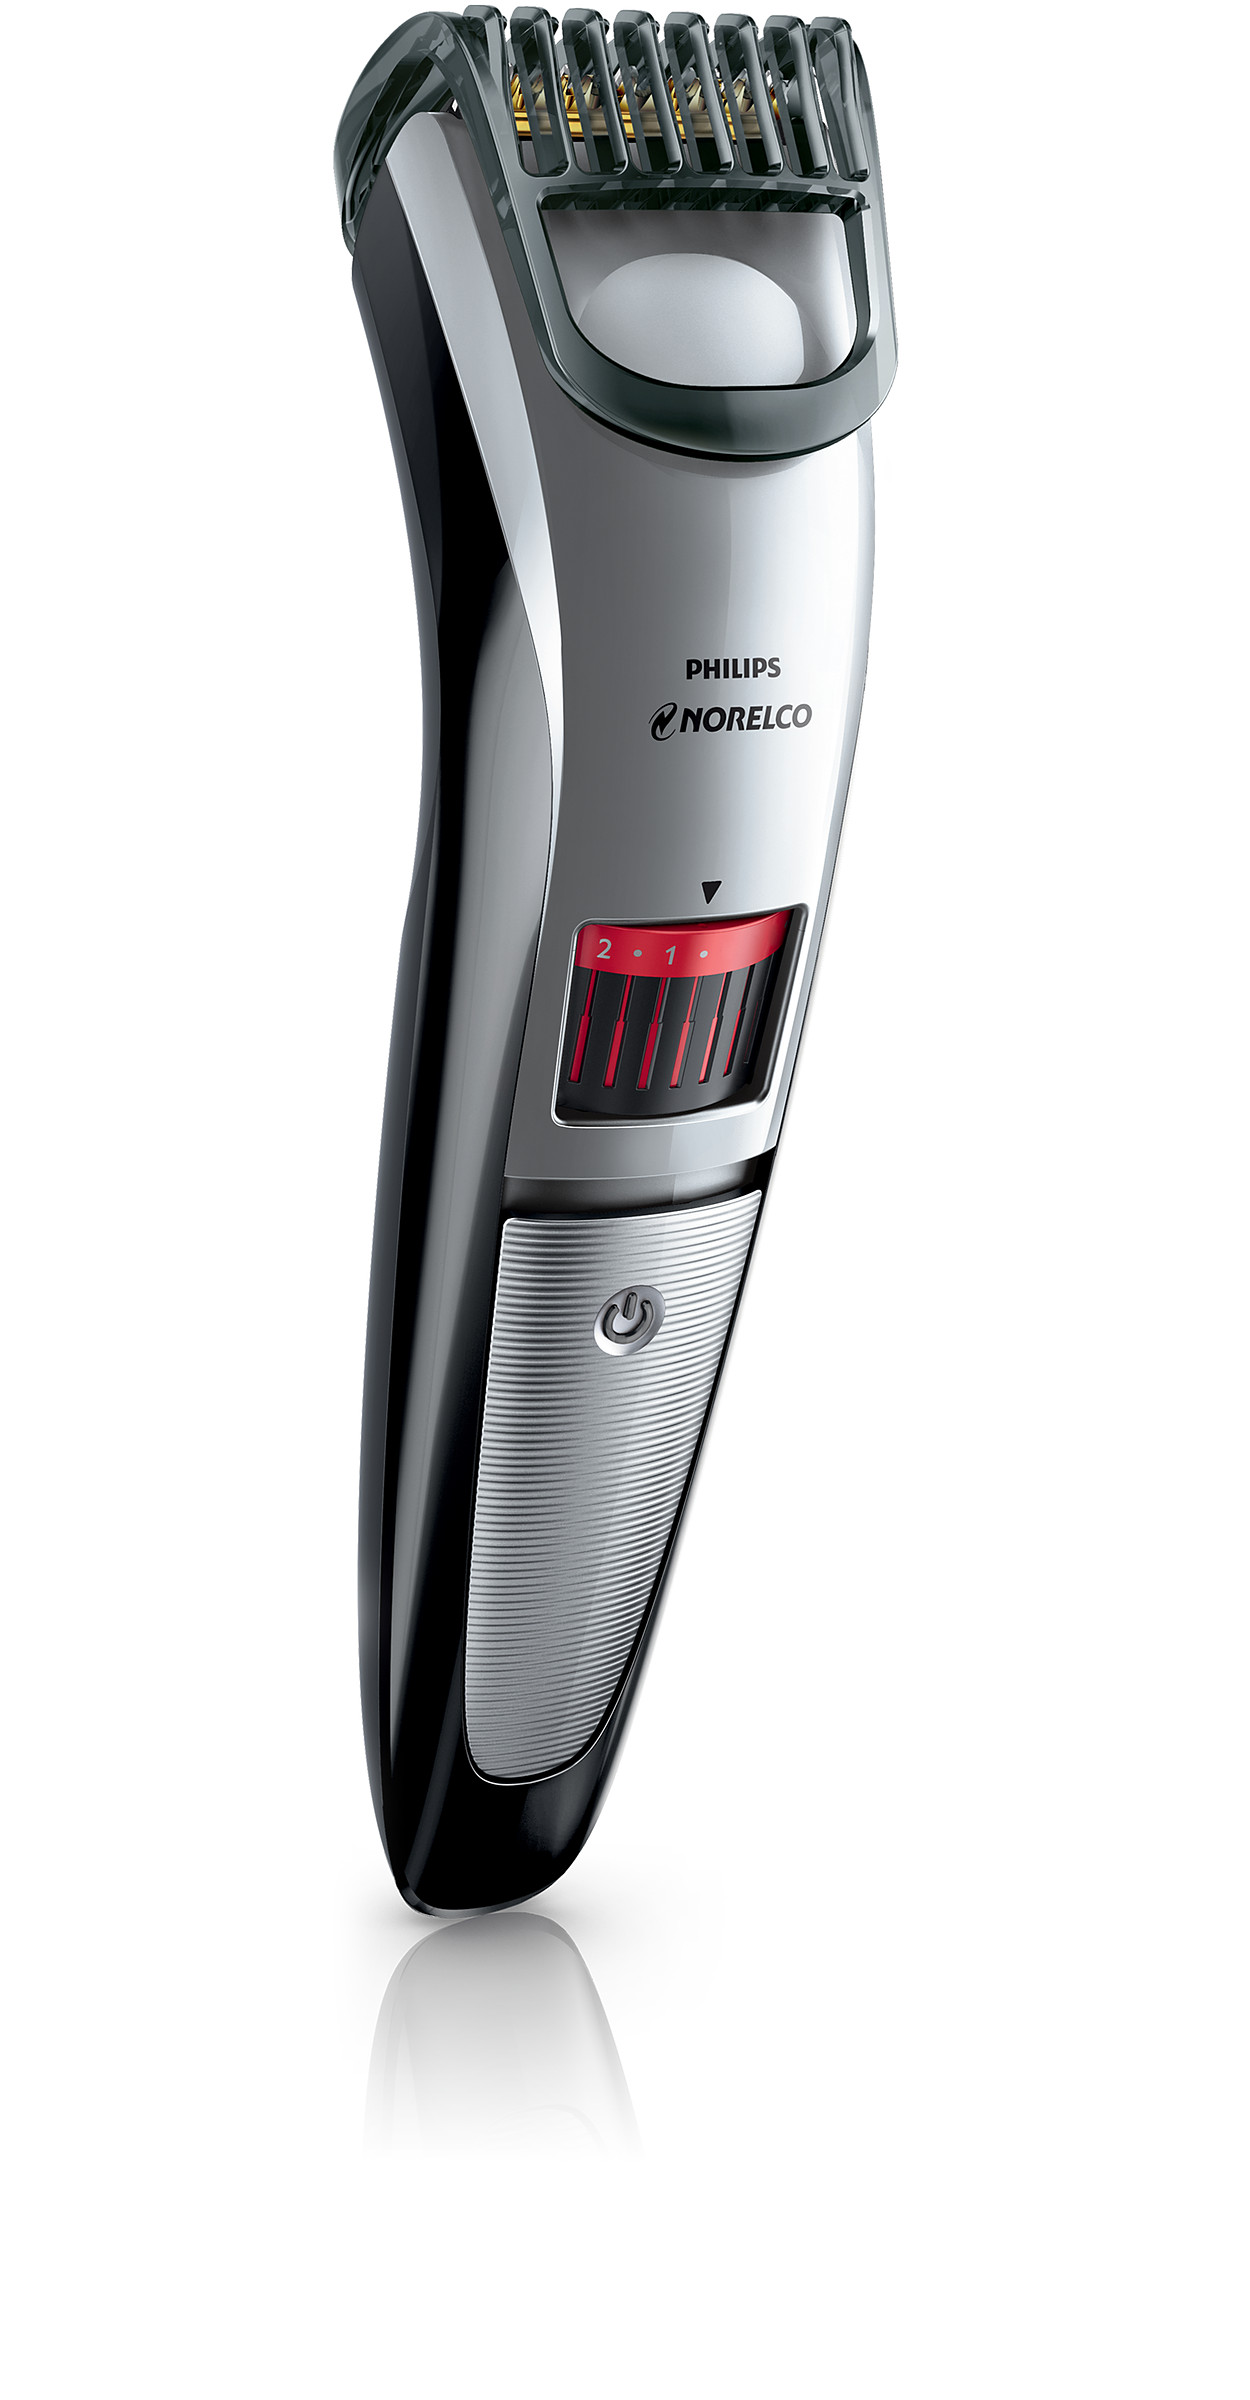 beardtrimmer 3500 beard stubble trimmer series 3000 qt4014 42 norelco. Black Bedroom Furniture Sets. Home Design Ideas